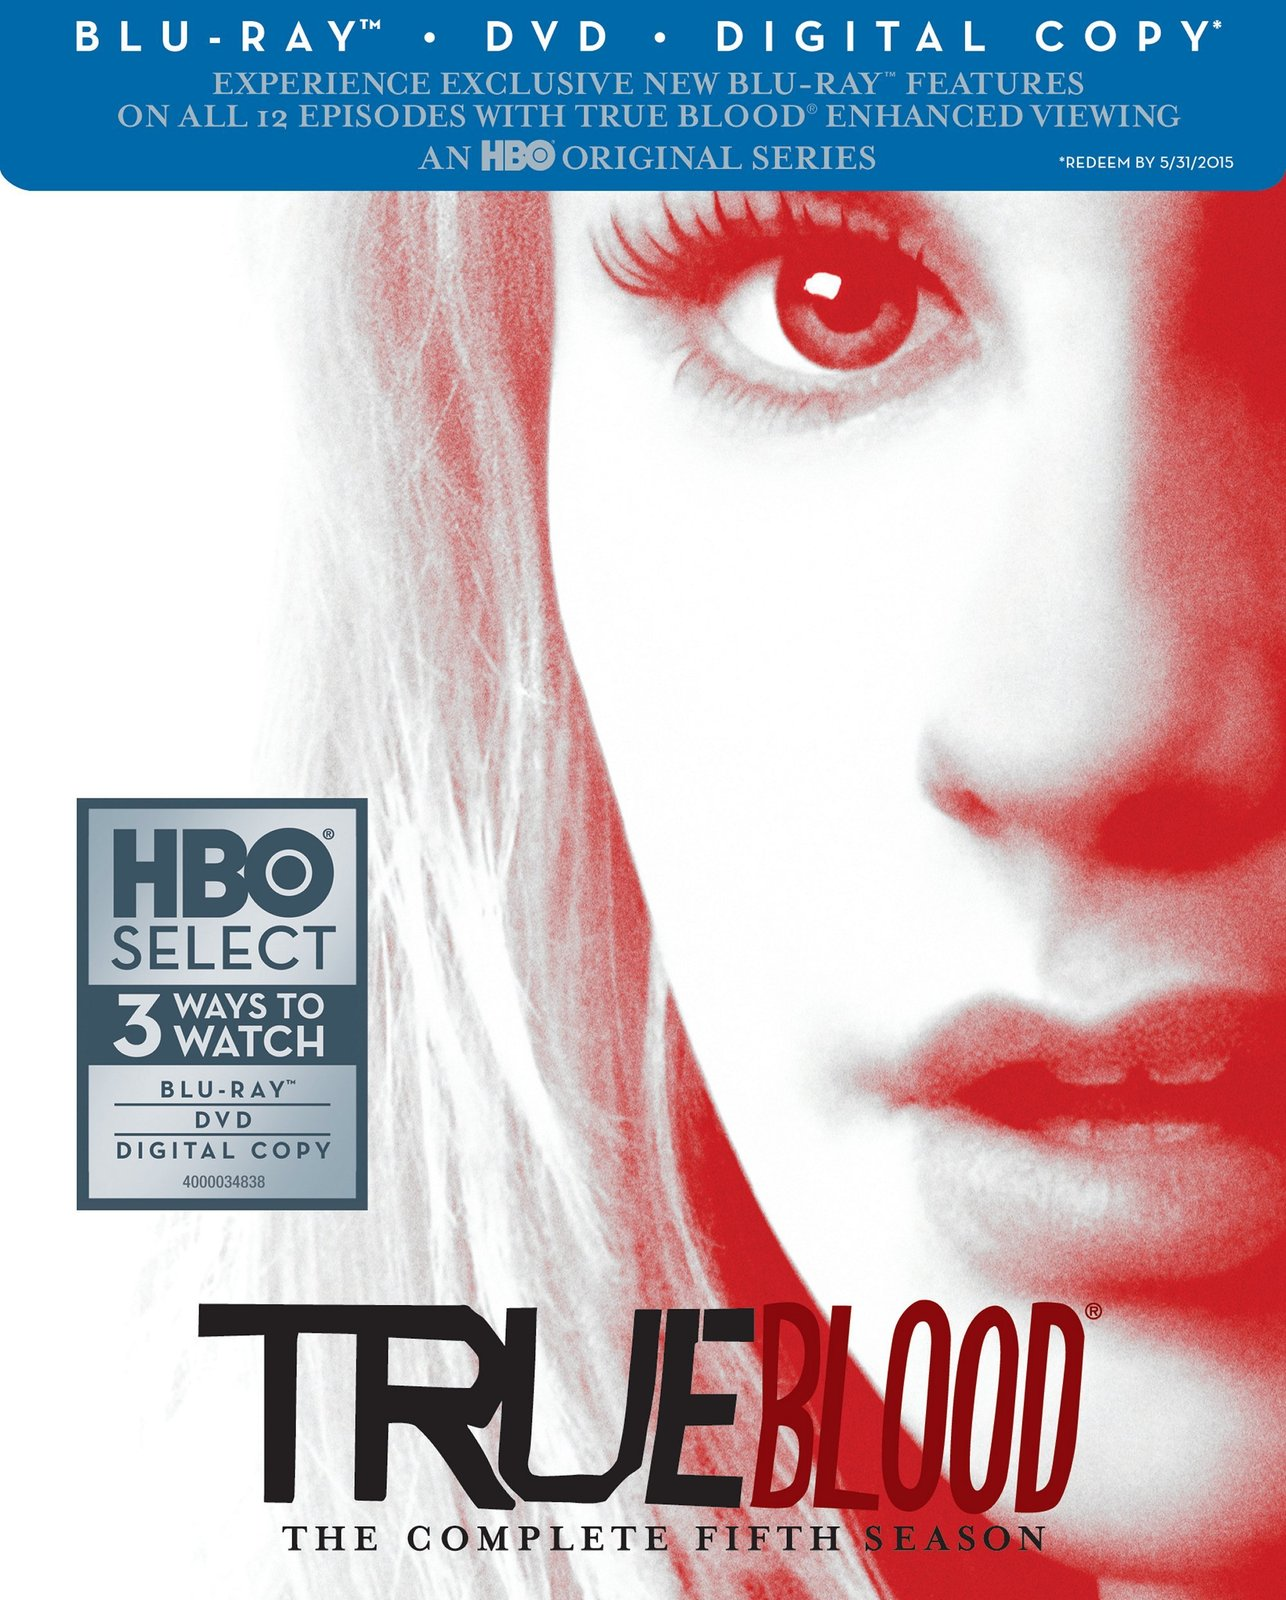 True Blood: Season 5 (Blu-ray/DVD Combo + Digital Copy) [Blu-ray] [2013]